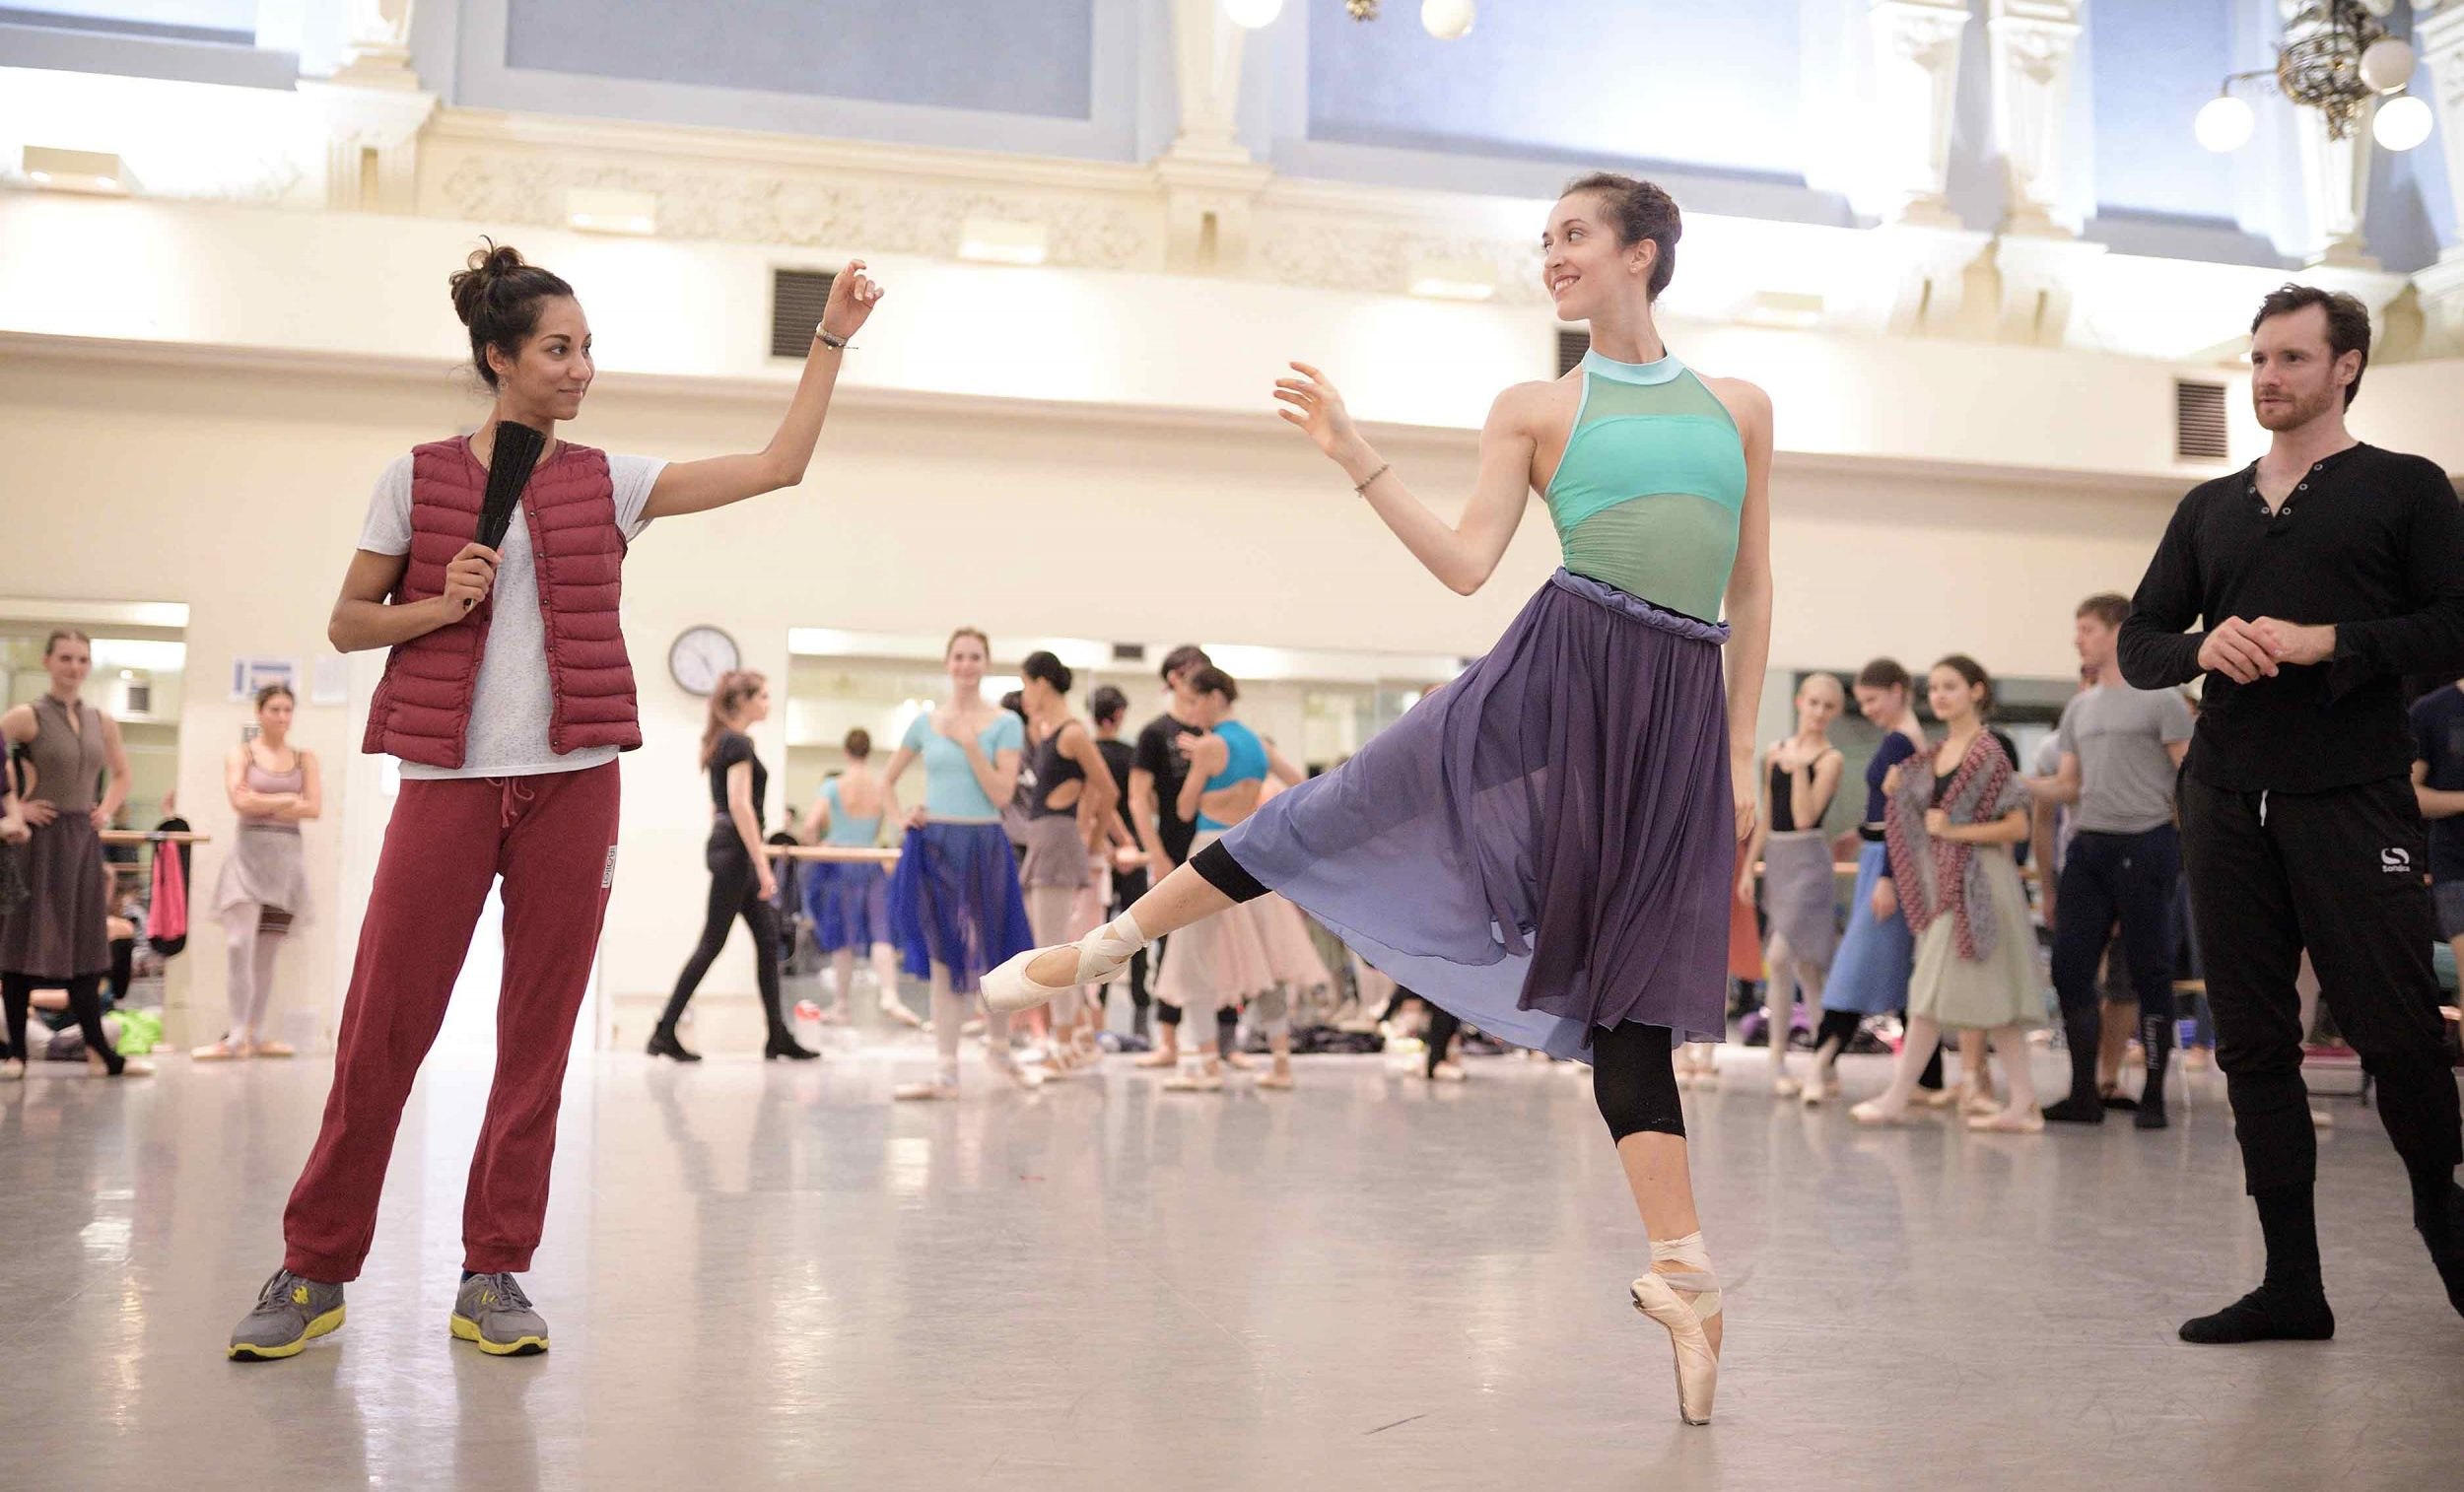 Sarah-Kundi,-Alice-Bellini-and-James-Streeter-in-rehearsals-for-Manon-(c)-Laurent-Liotardo_WEB